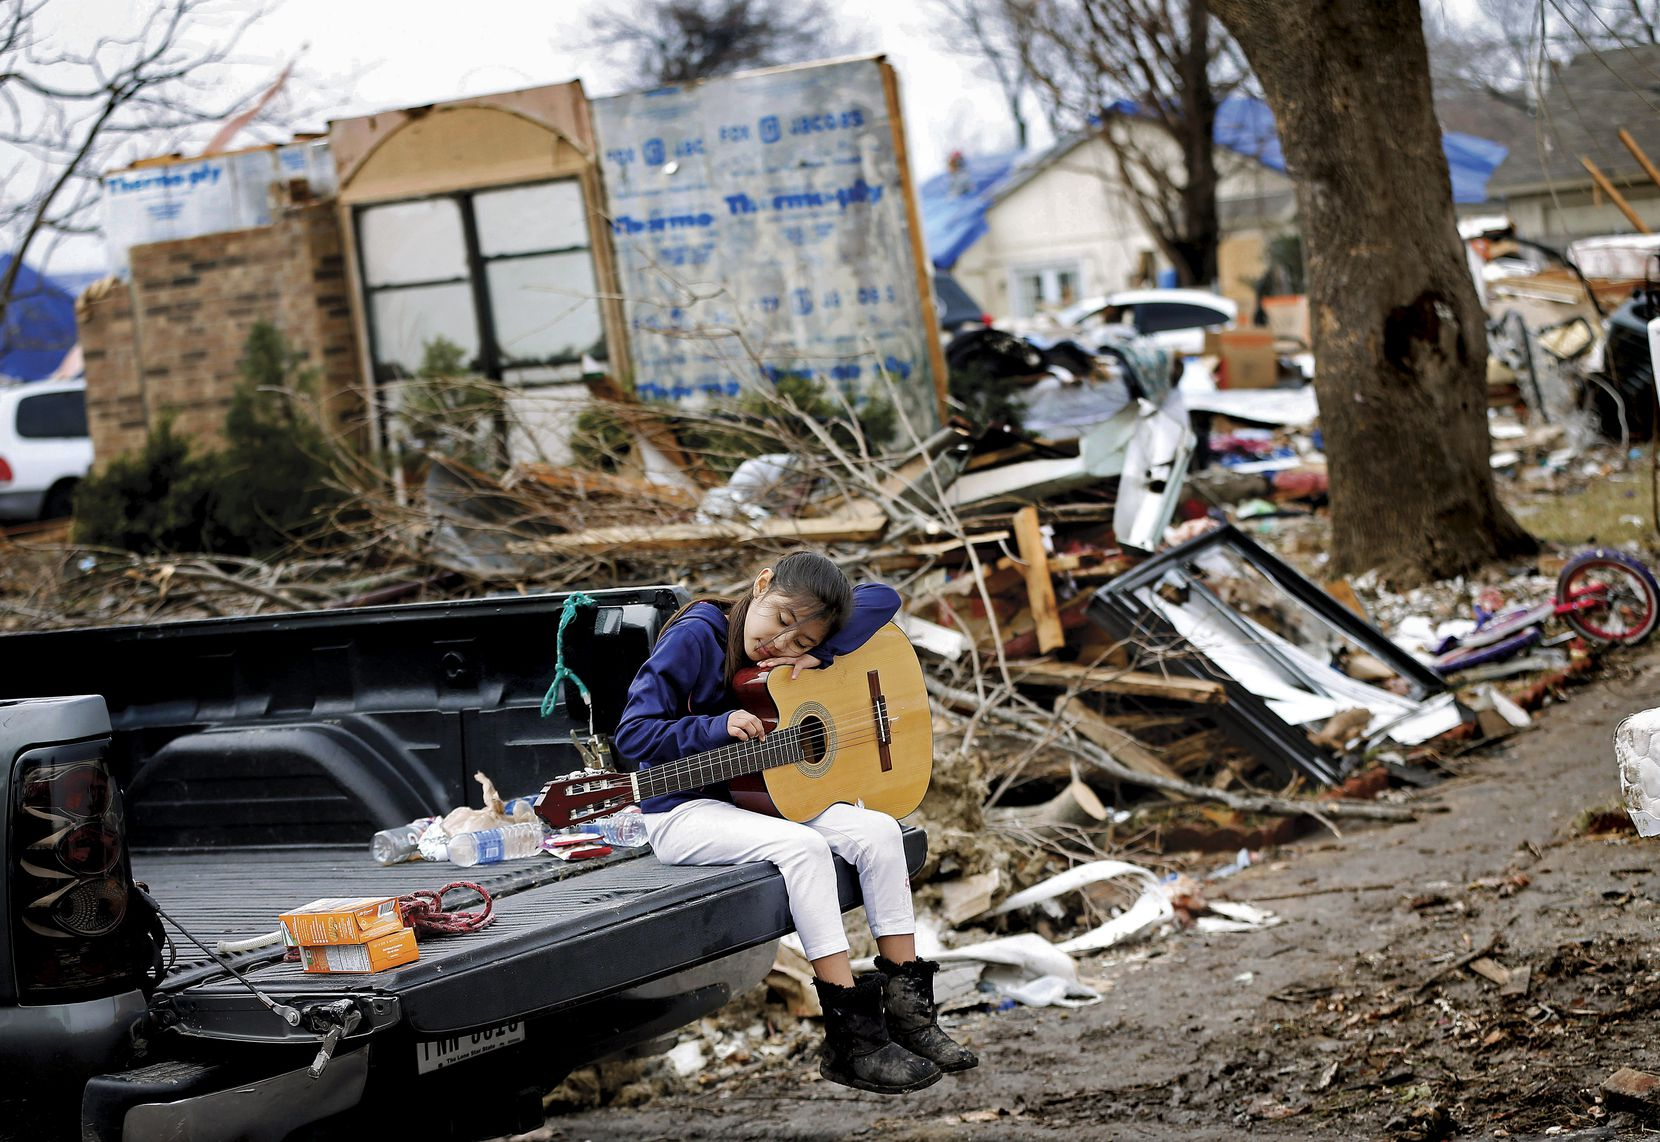 Natalie Rojas, 8, strummed a guitar found in the bedroom of her tornado-damaged home on Mariner Drive in Rowlett on Jan. 8. The guitar was a gift from her uncle.